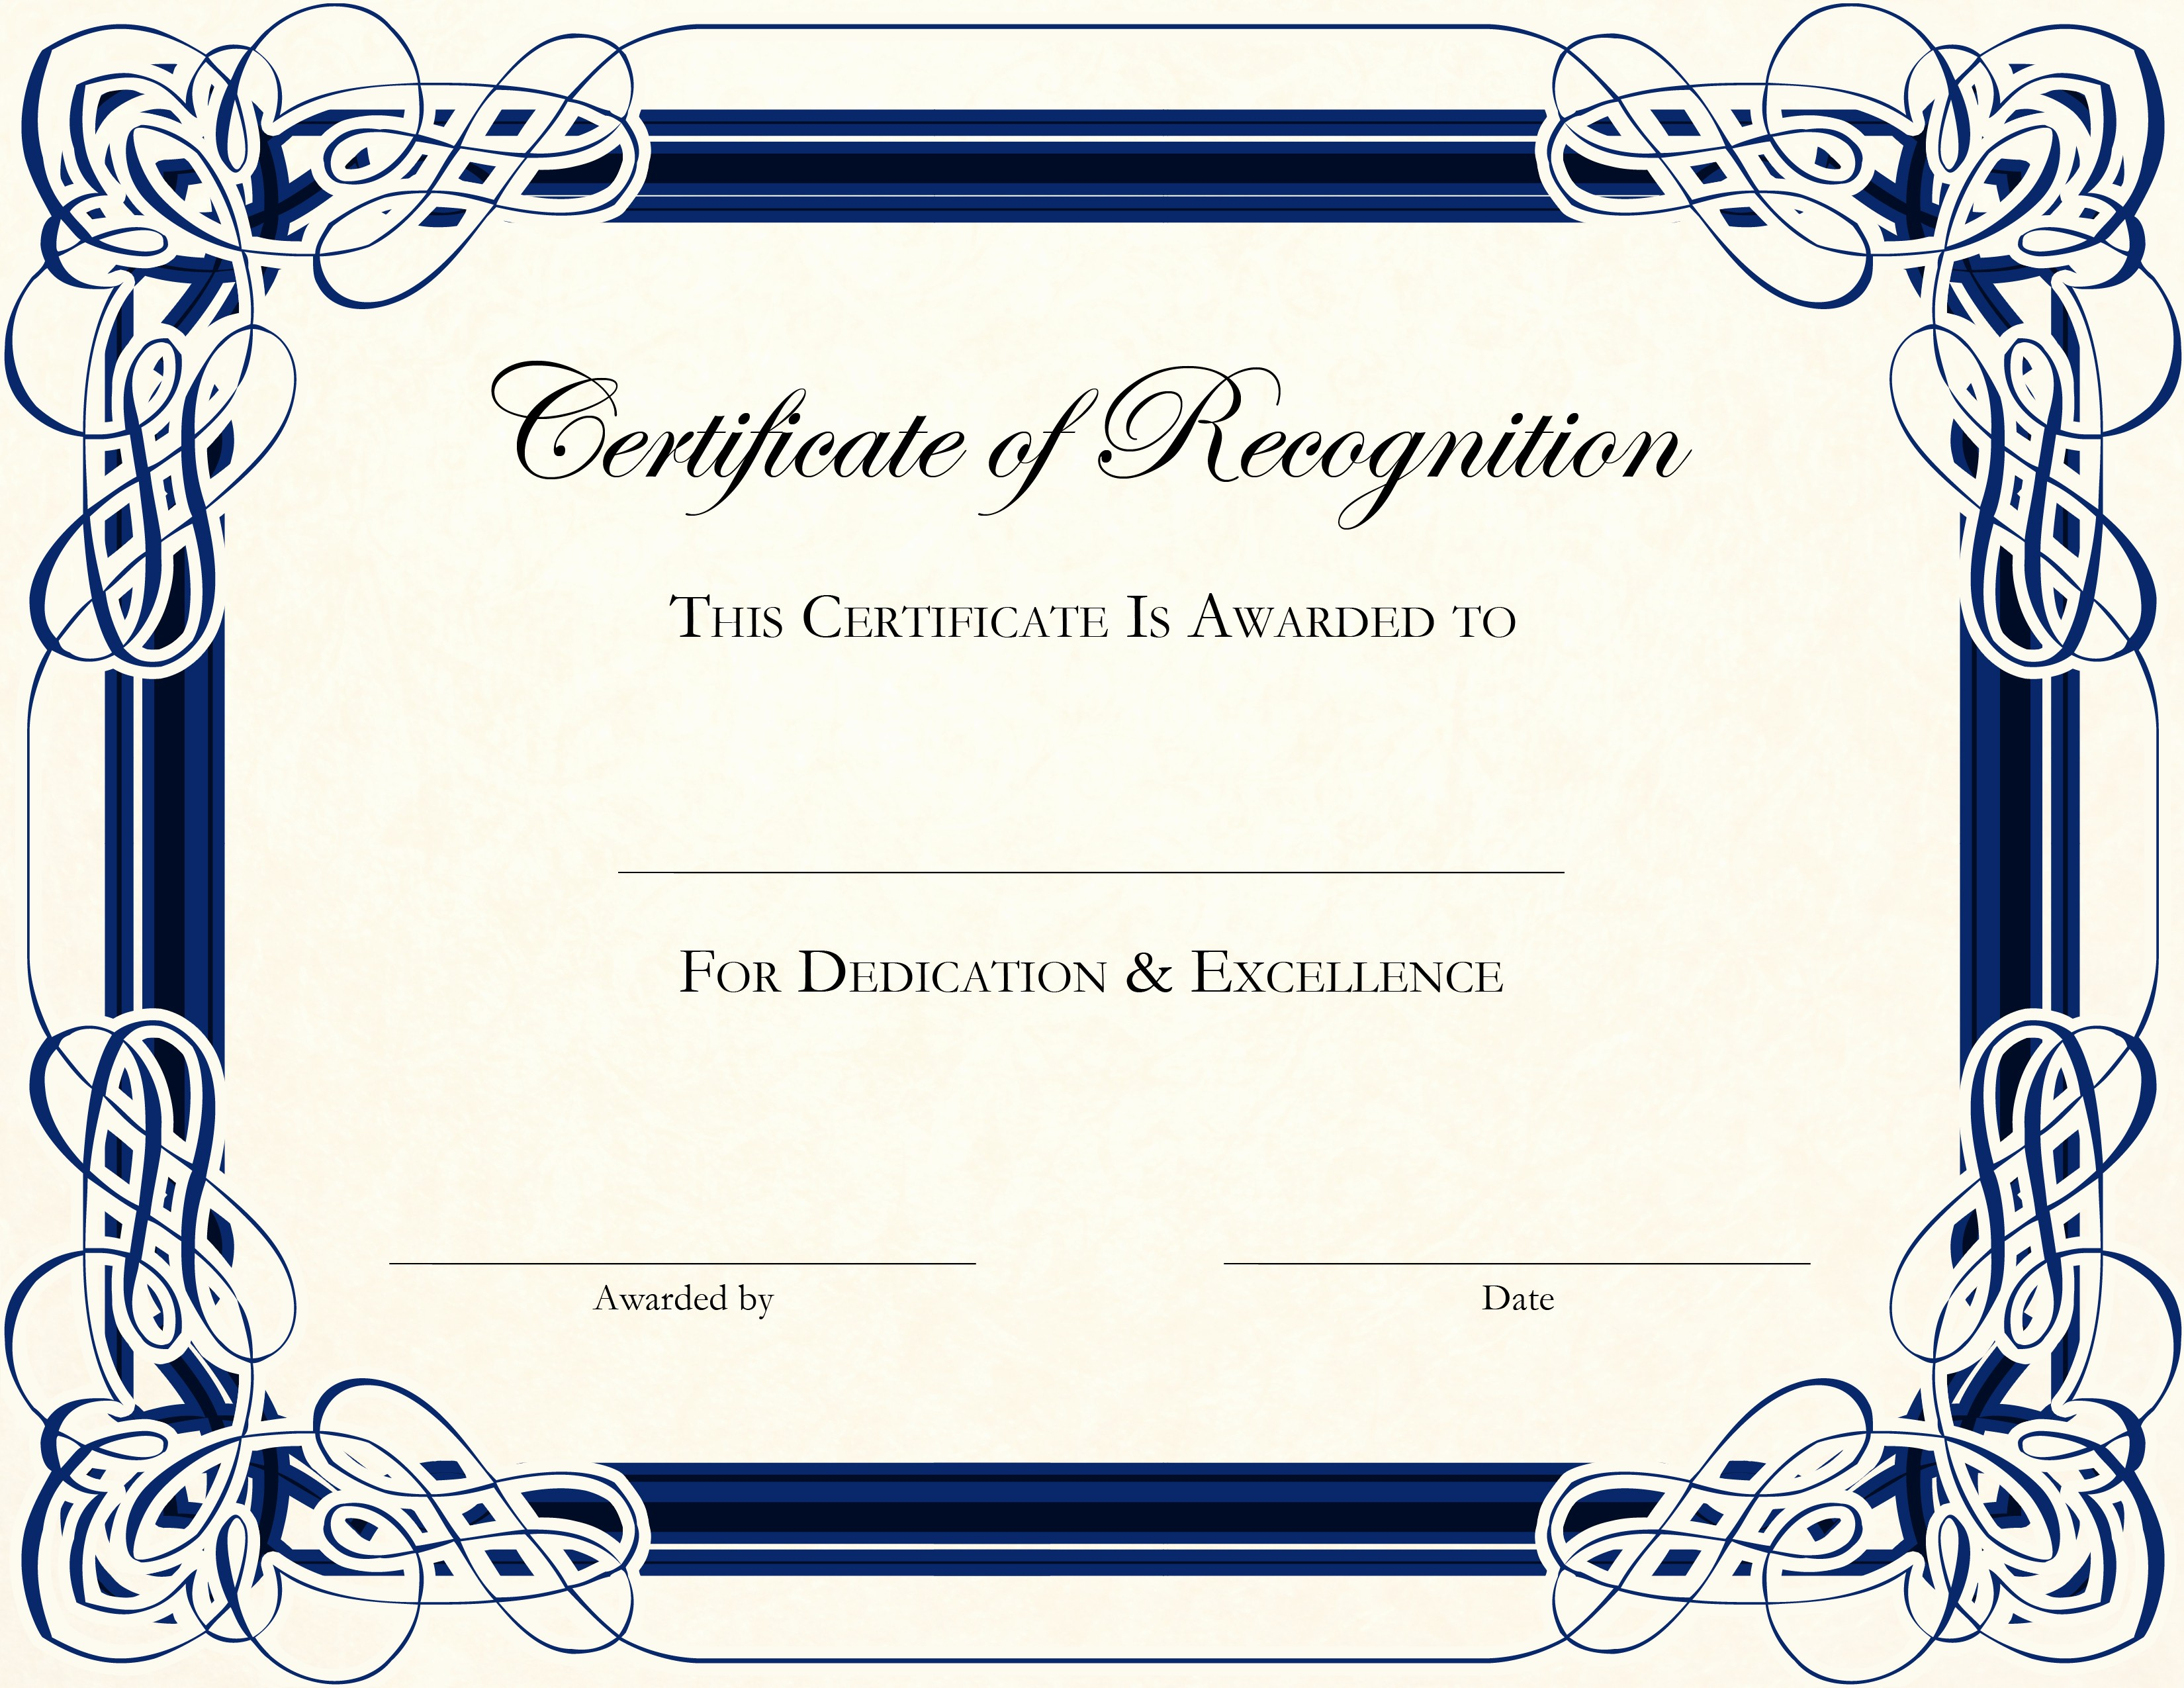 Word Template Certificate Of Recognition Lovely Beautiful Design Of Certificate Of Recognition Template